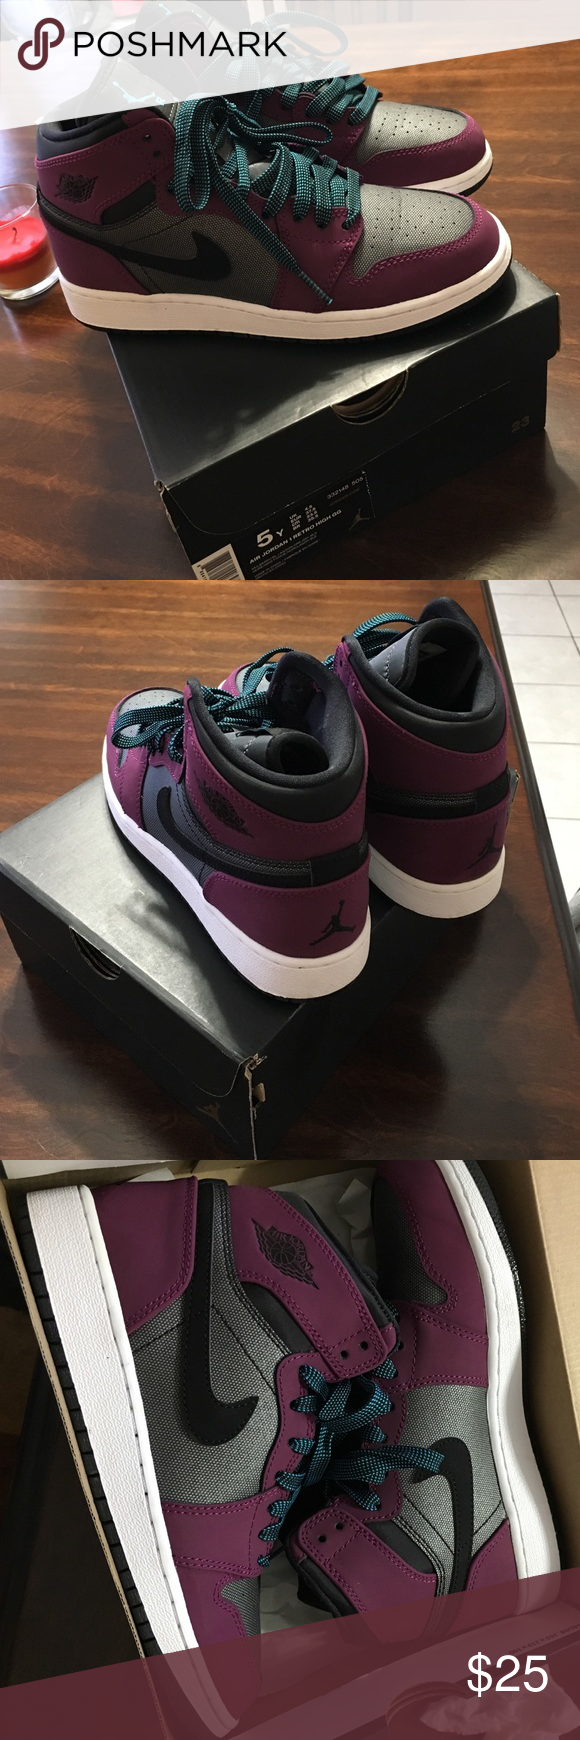 4be0aa6e941b Air Jordan 1 retro high GG (size 5) They are a mulberry color dark grey and  black with baby blue and black shoe laces Jordan Shoes Sneakers